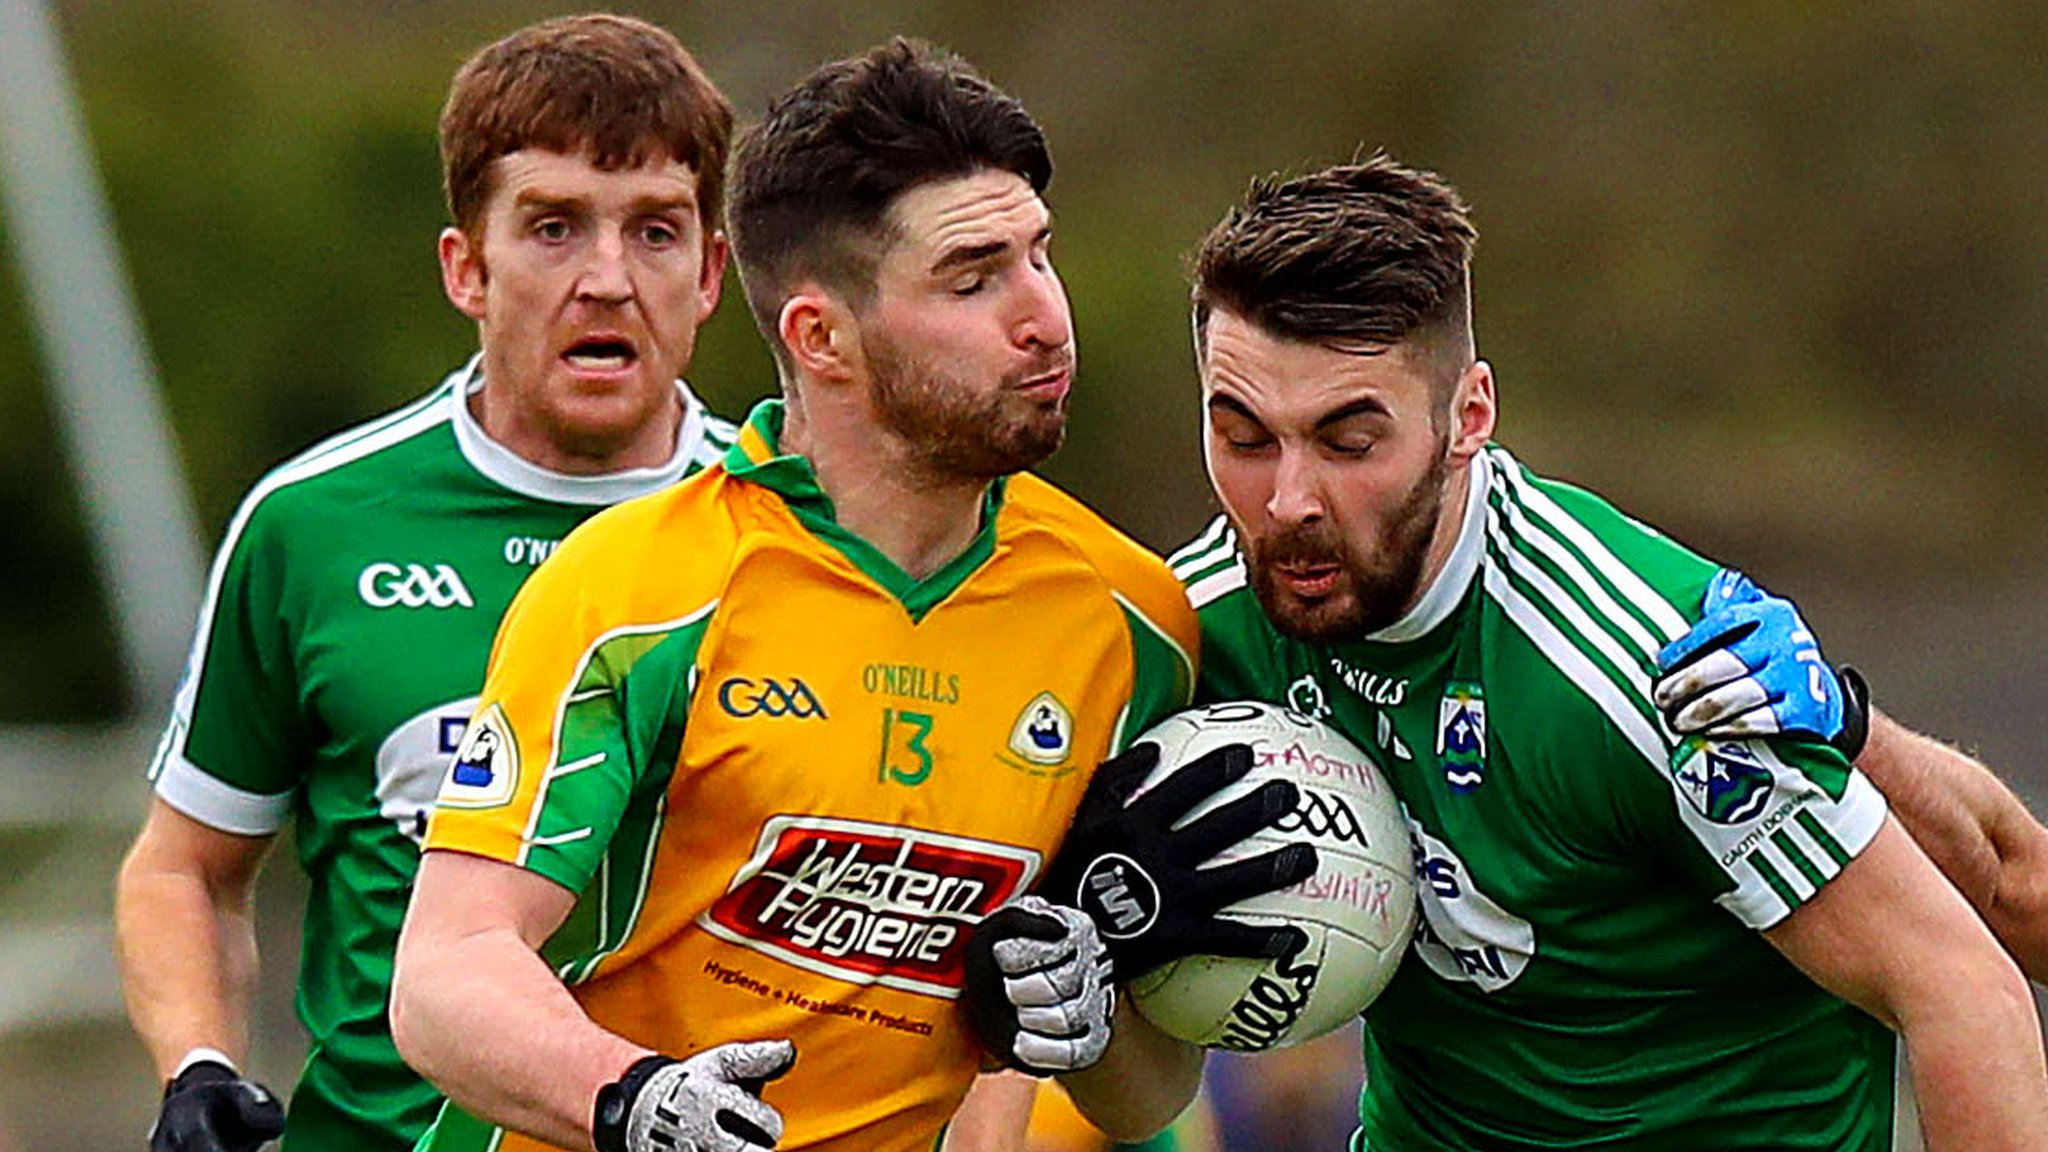 All-Ireland Club SFC semi-final: Corofin beat Gaoth Dobhair 2-13 to 1-12